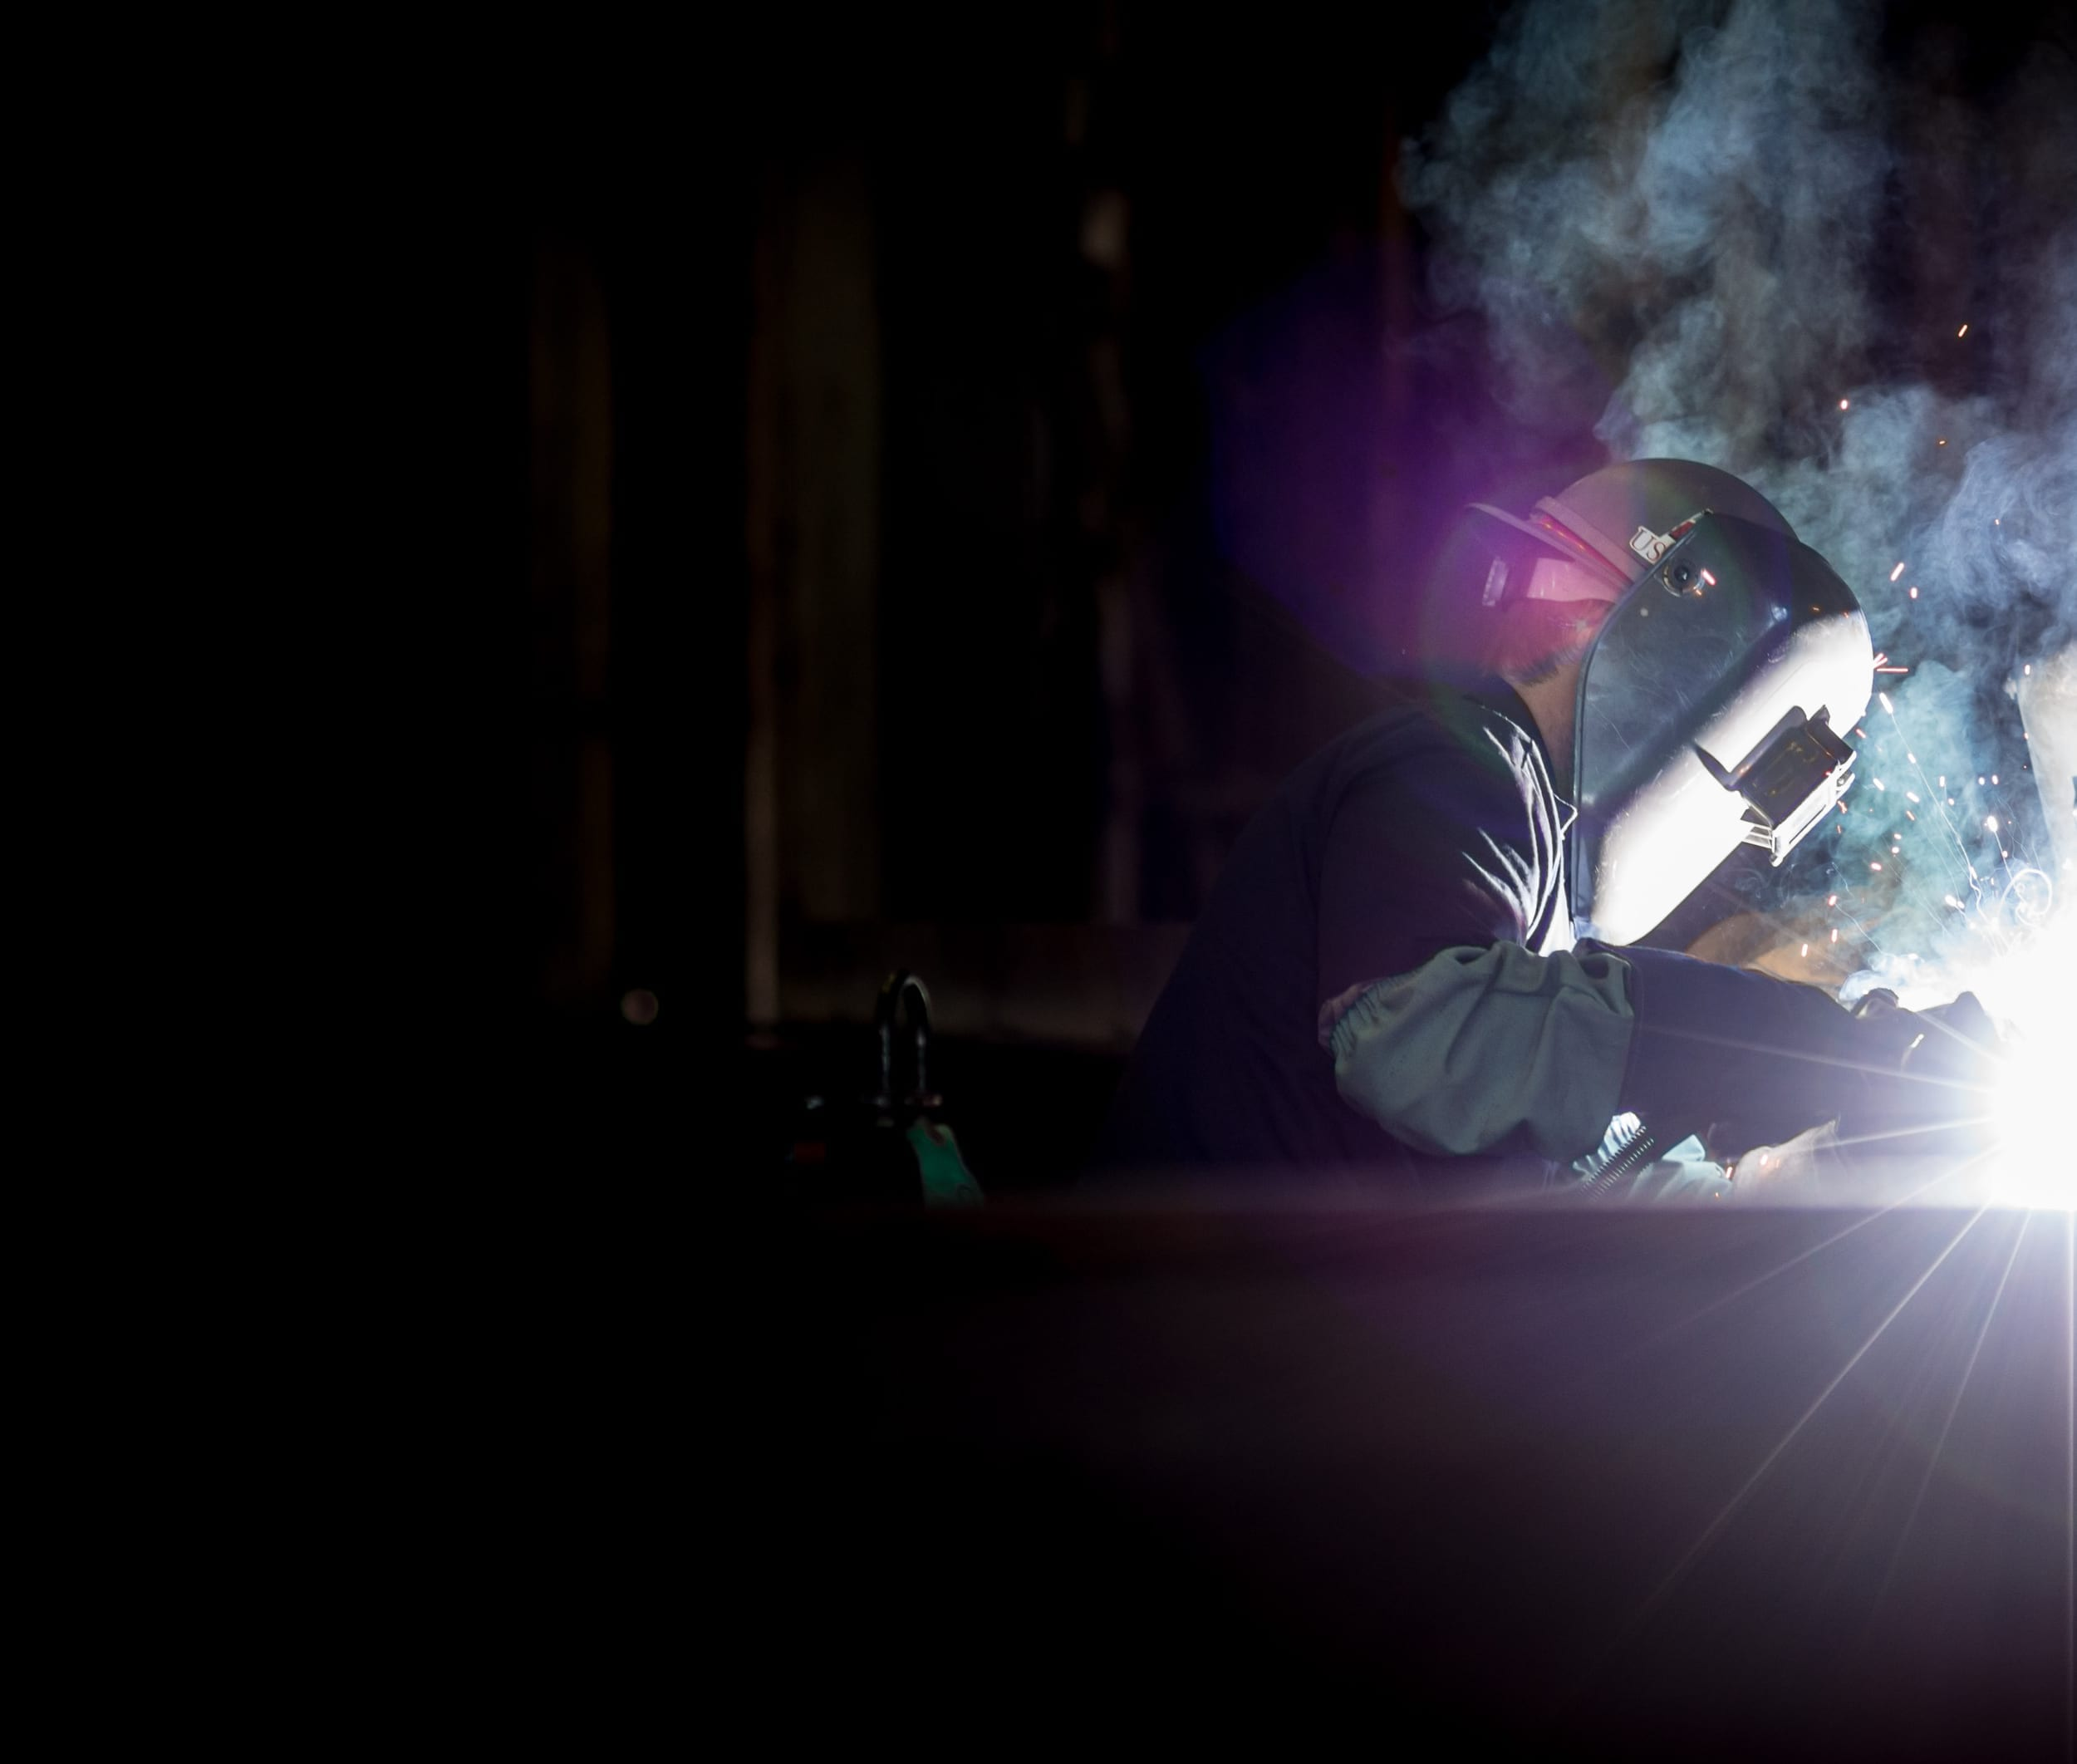 Welding in a Shipyard